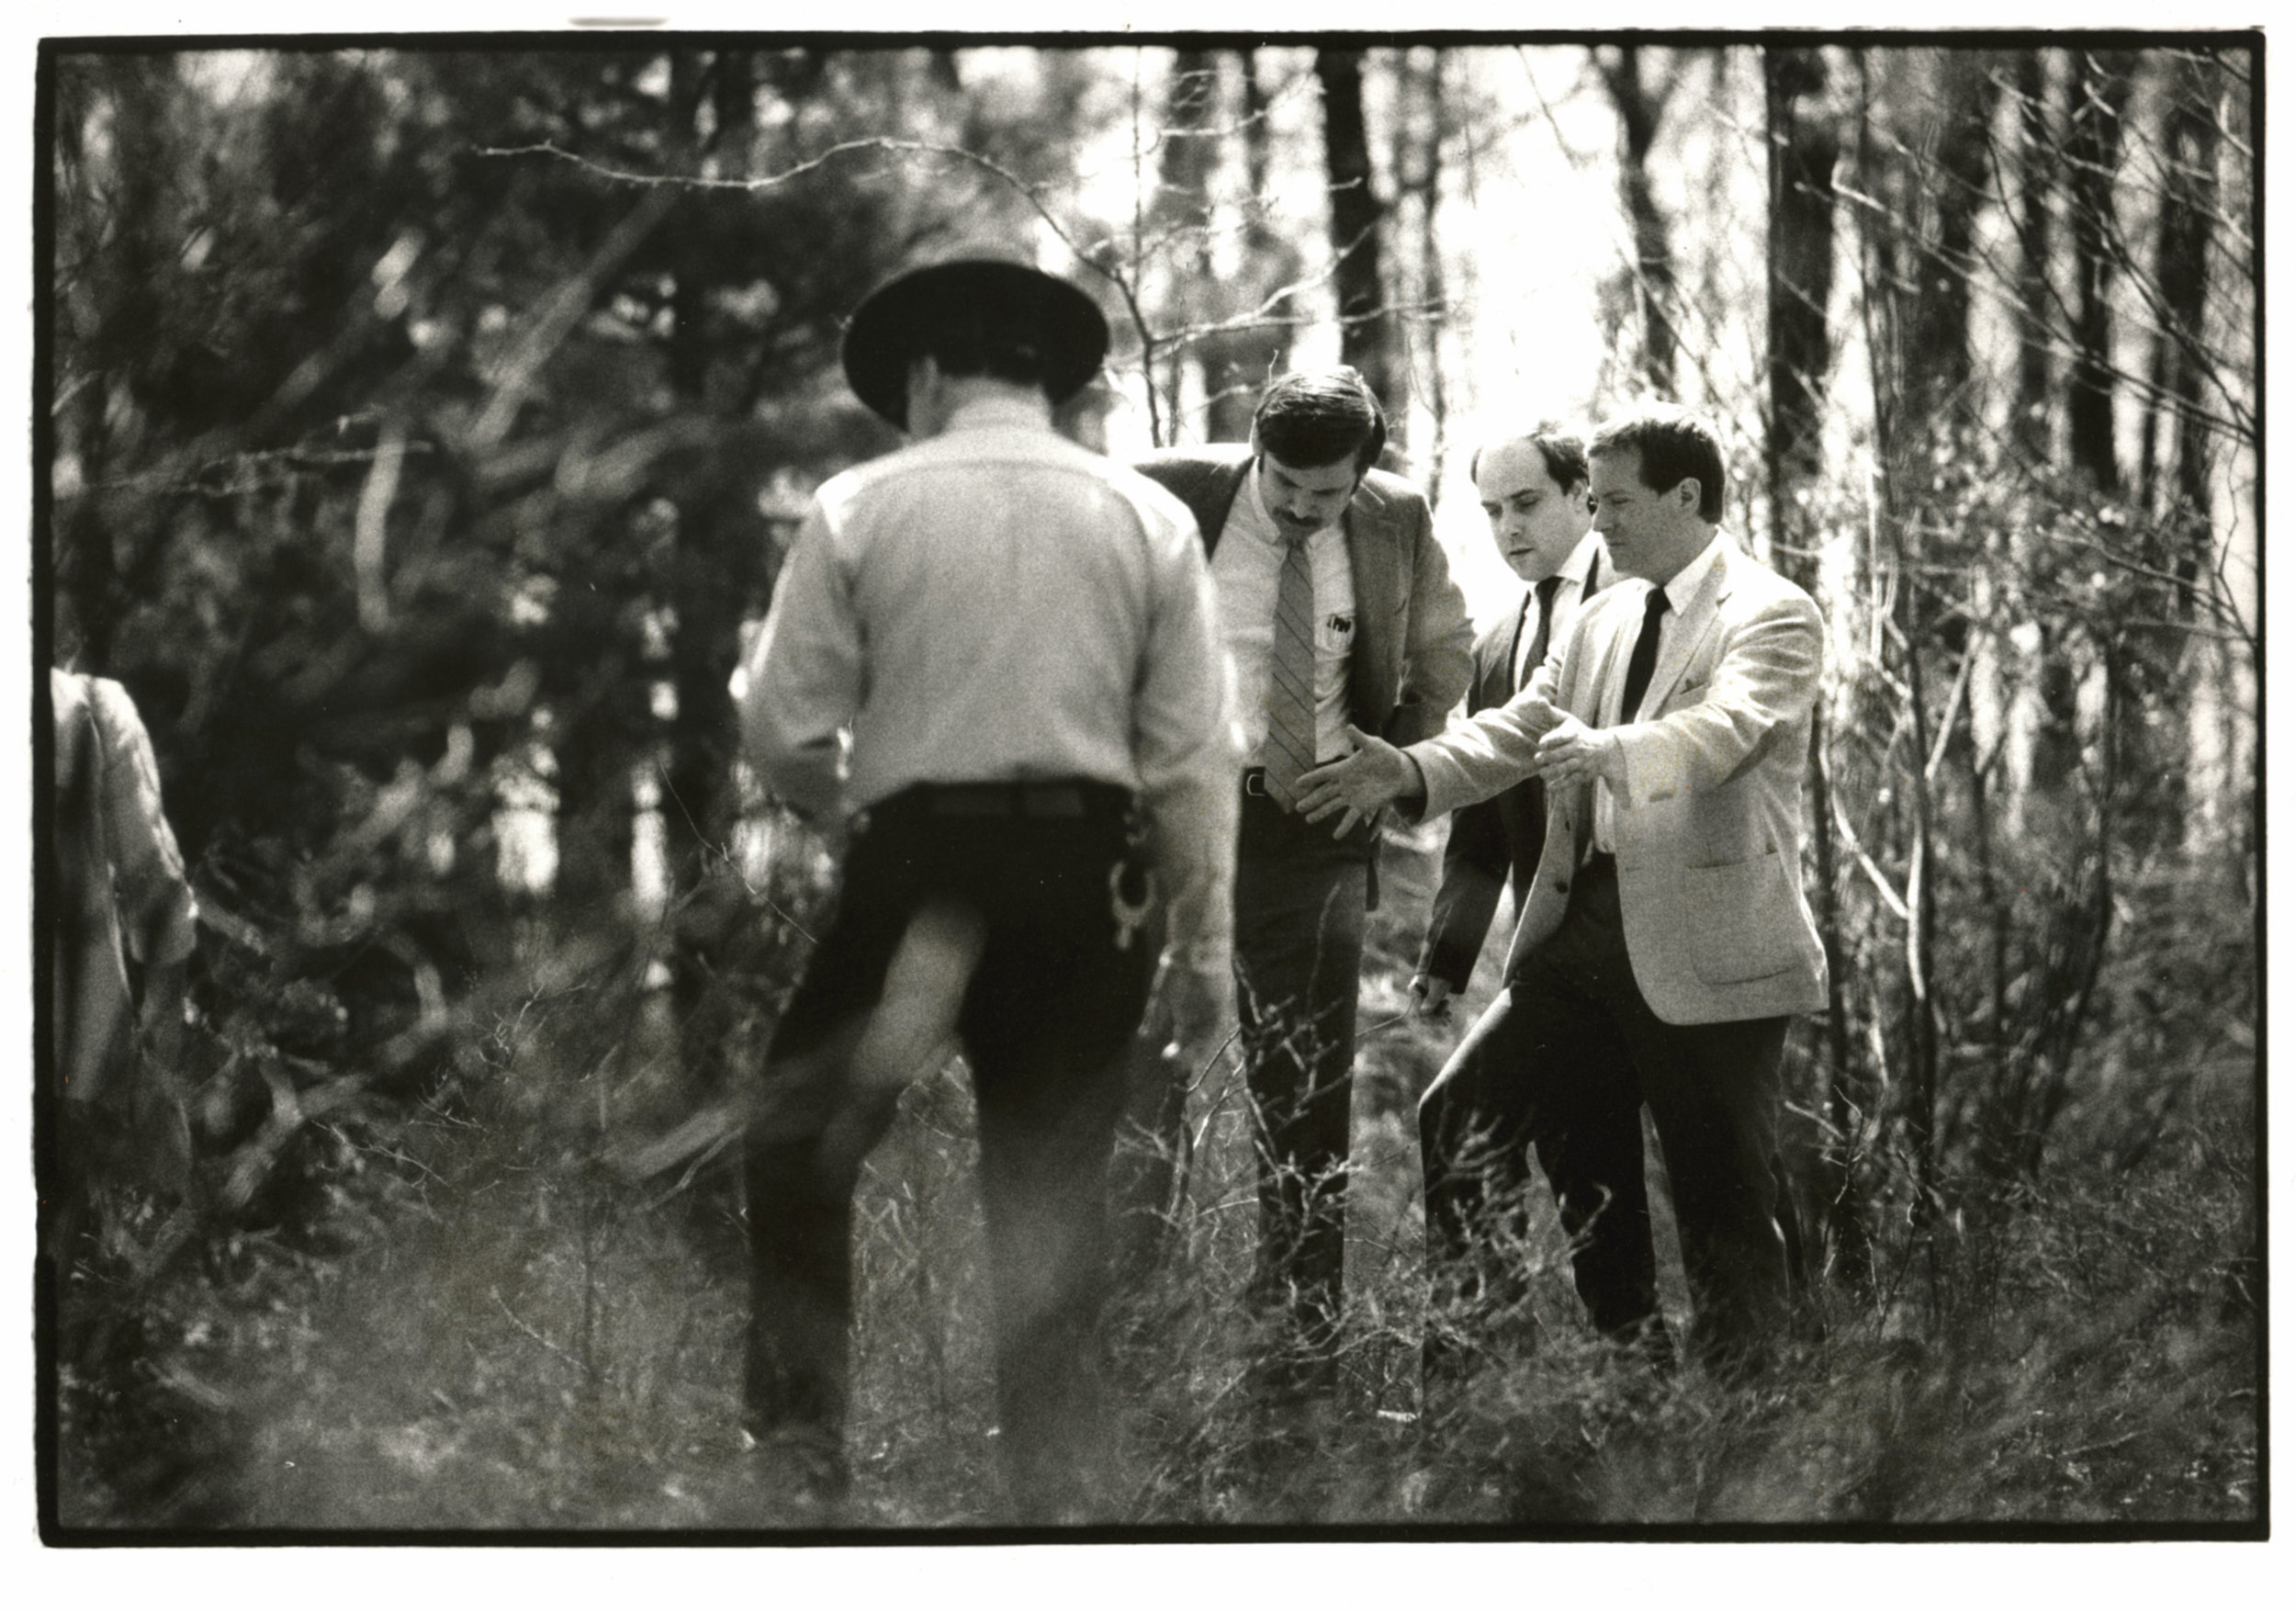 Rhode Island Assistant Attorney General Michael Burns, right, gestures over a hole in Rehoboth, Massachusetts,in 1986, where Dickie Callei was allegedly buried by Bobo Marrapese. Bobo was found guilty of that murder and sentenced to life in prison. At 74,Bobo is still serving time today. Courtesy of the Providence Journal/Mary Murphy .